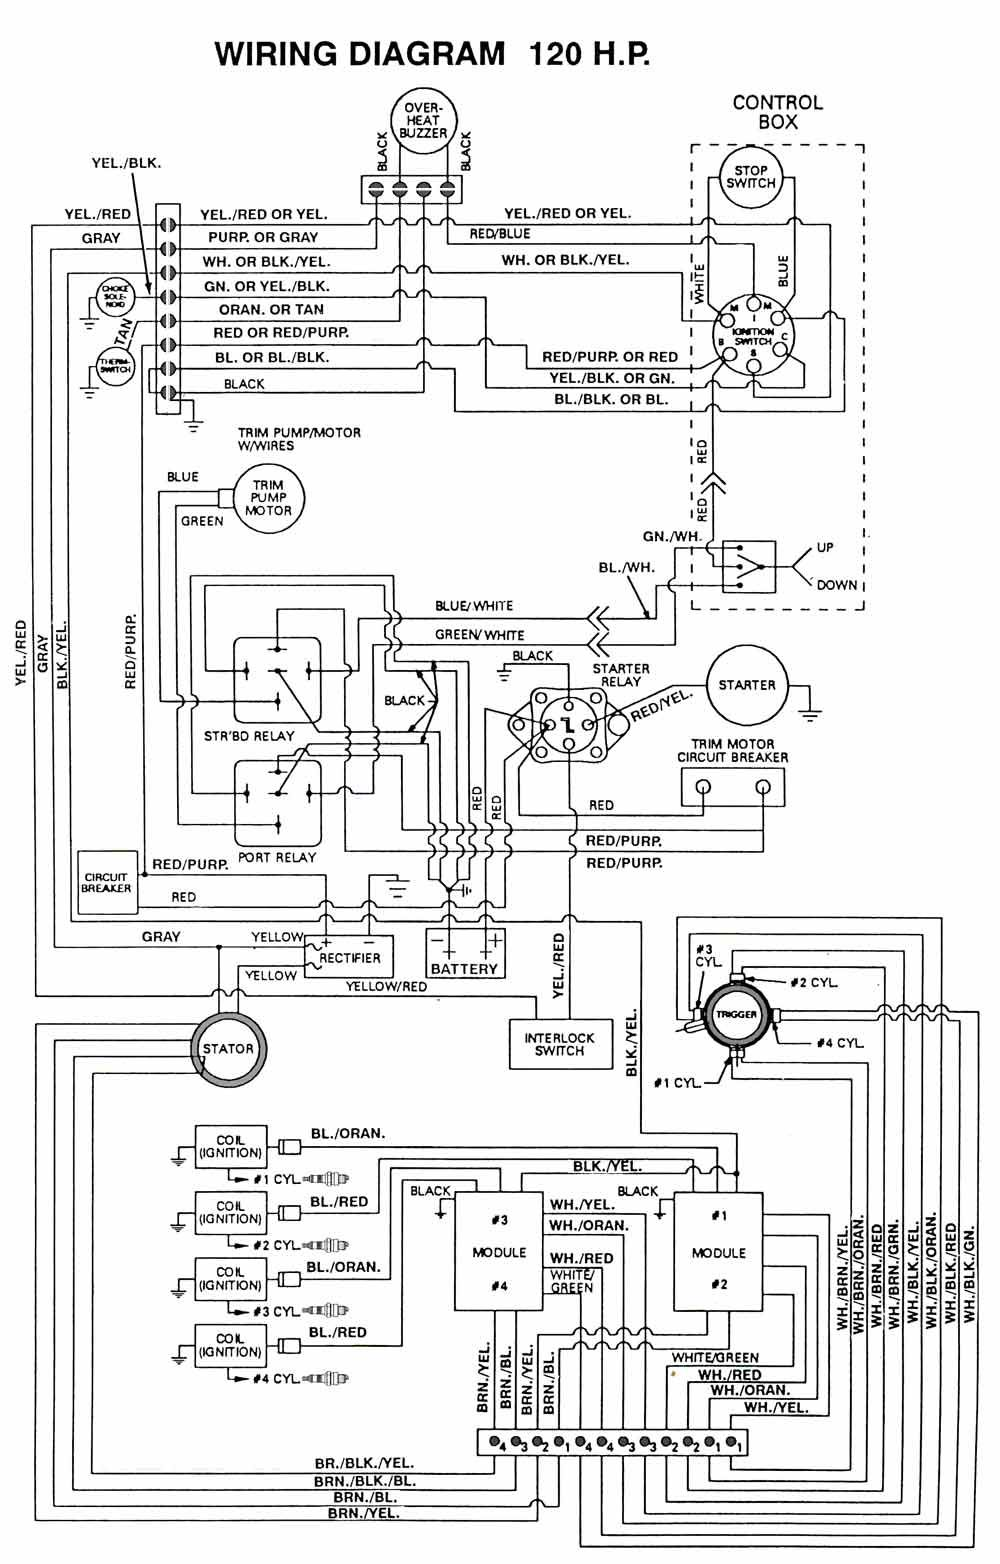 image result for wiring diagram for 1990 mercury force 120 hp outboard motor  | outboard, outboard motors, diagram  pinterest